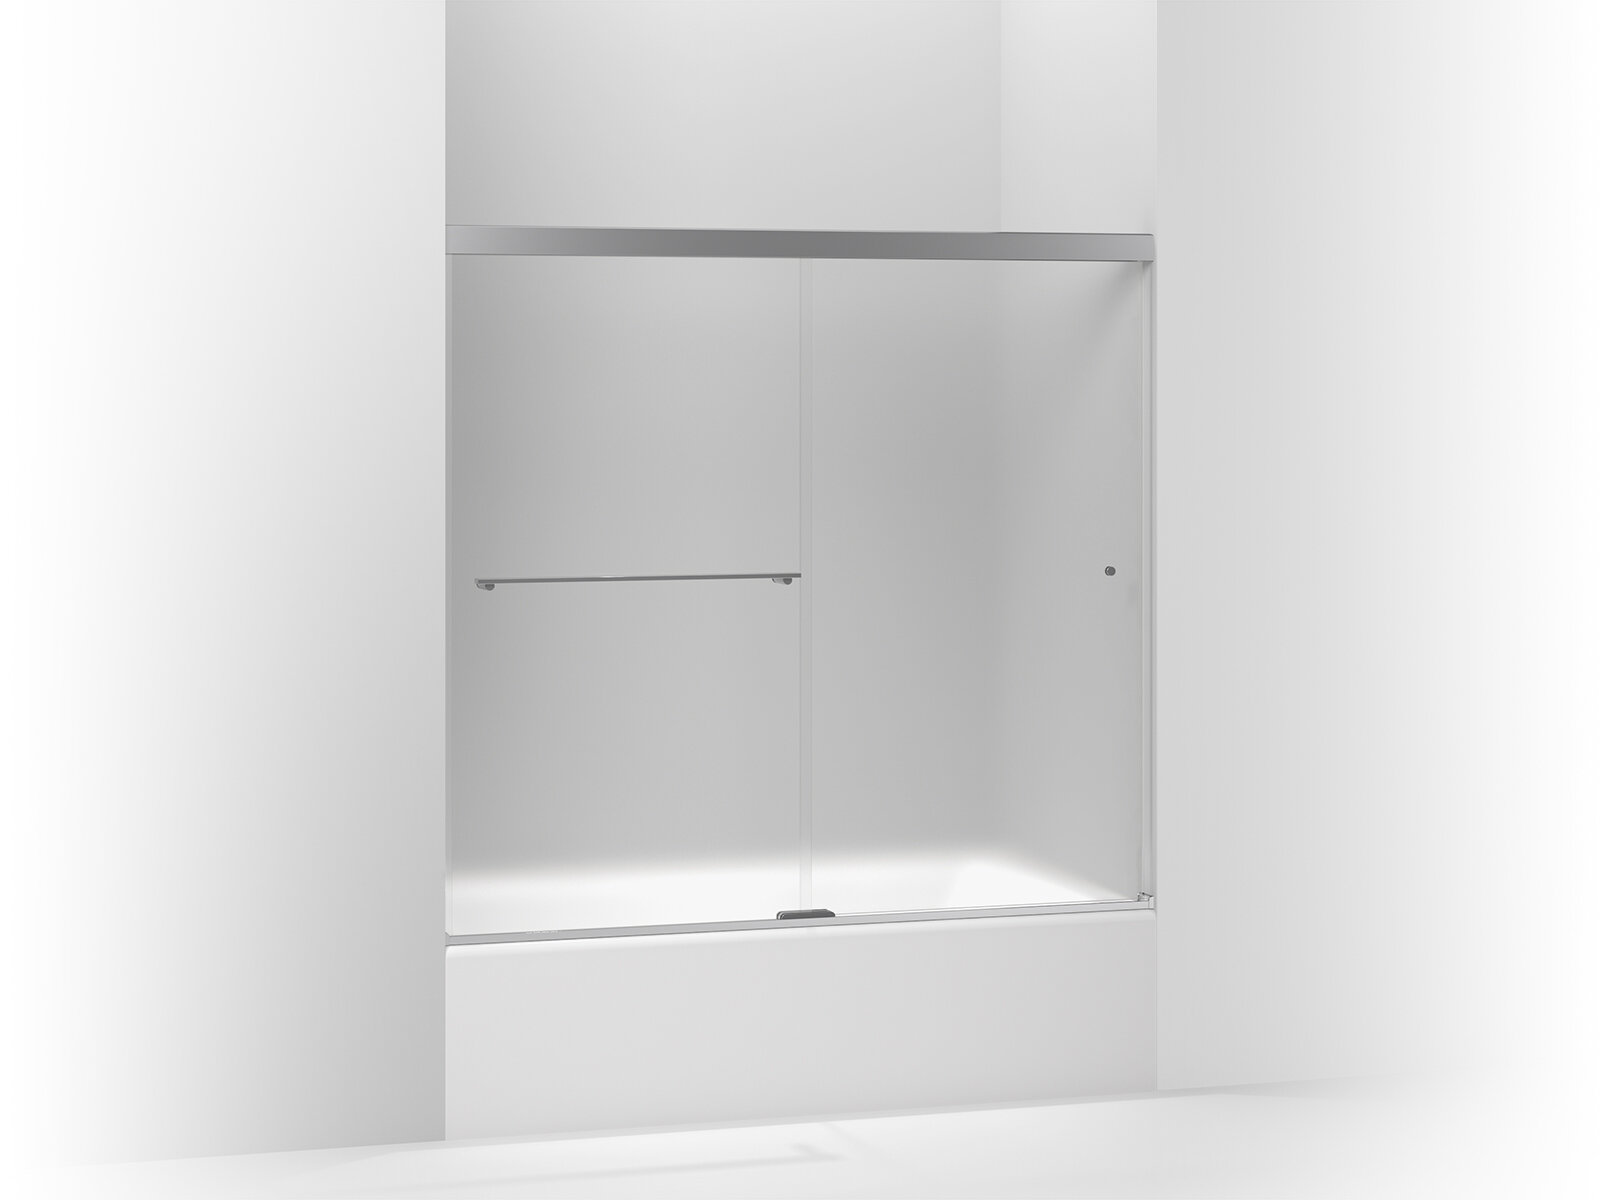 Kohler Revel Sliding Bath Door 55 5 H X 56 625 59 625 W With 0 3125 Thick Frosted Glass